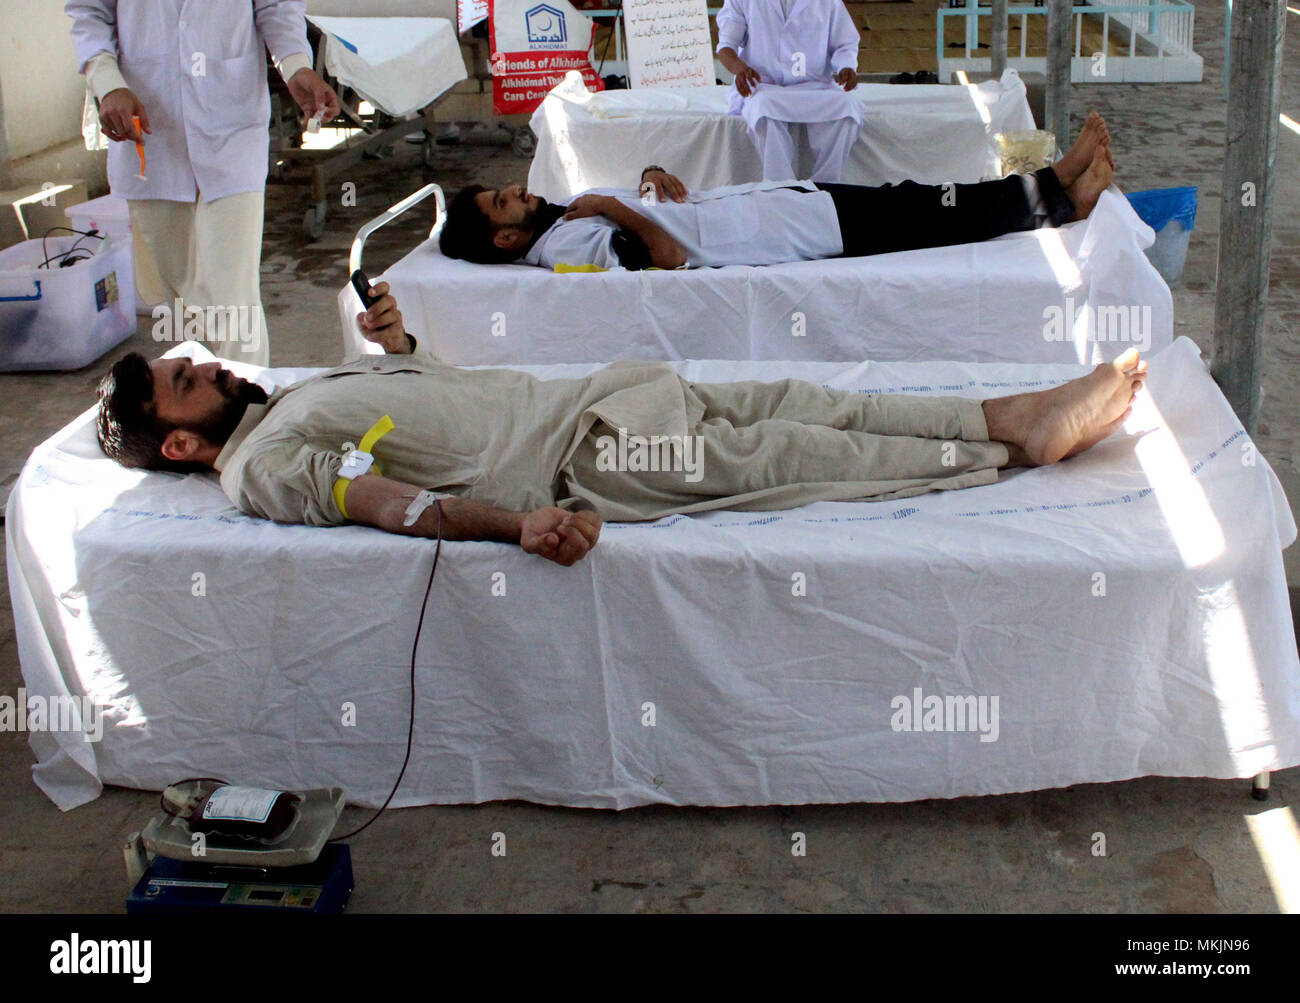 Peshawar. 8th May, 2018. Pakistani men donate blood at a medical center on World Thalassemia Day in northwest Pakistan's Peshawar on May 8, 2018. Thalassemia, also called Mediterranean anemia, is an inherited and non-infectious blood disorder. Credit: Saeed Ahmad/Xinhua/Alamy Live News - Stock Image